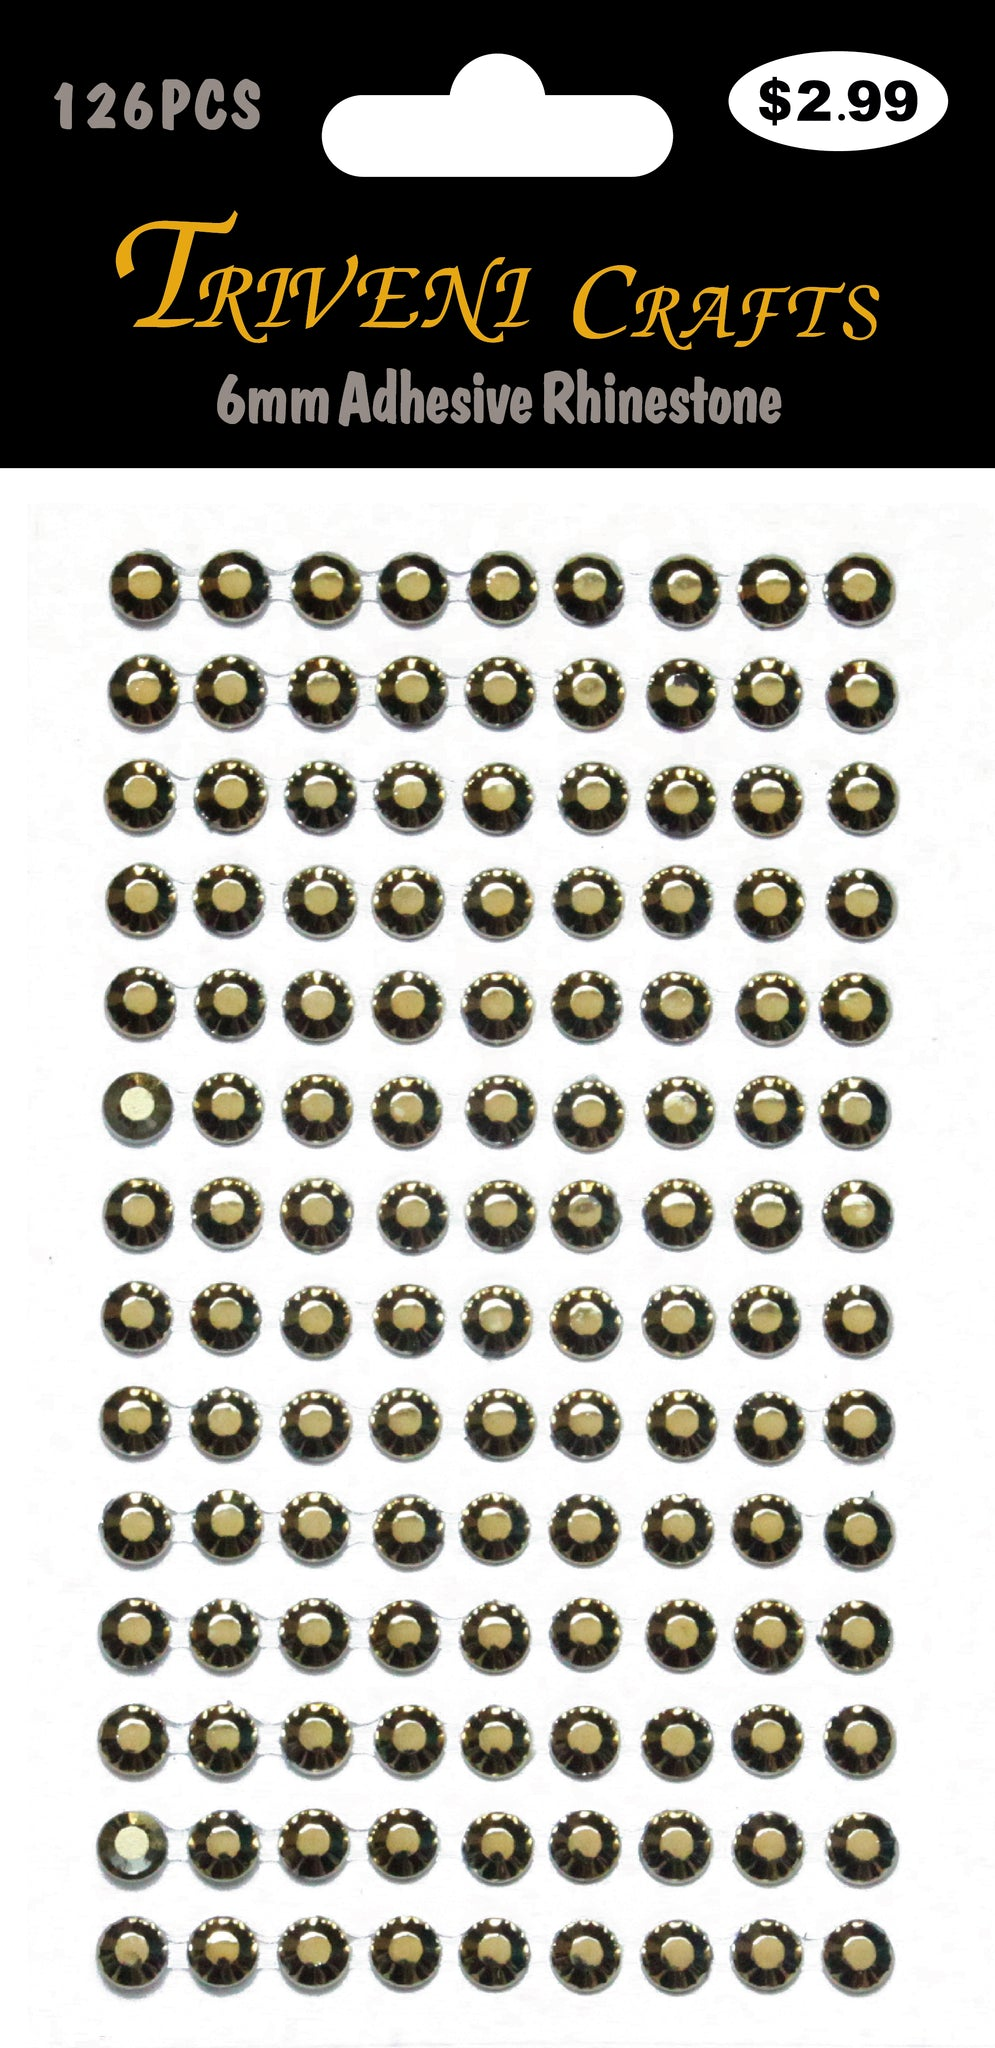 6mm Adhesive Rhinestone - Gold